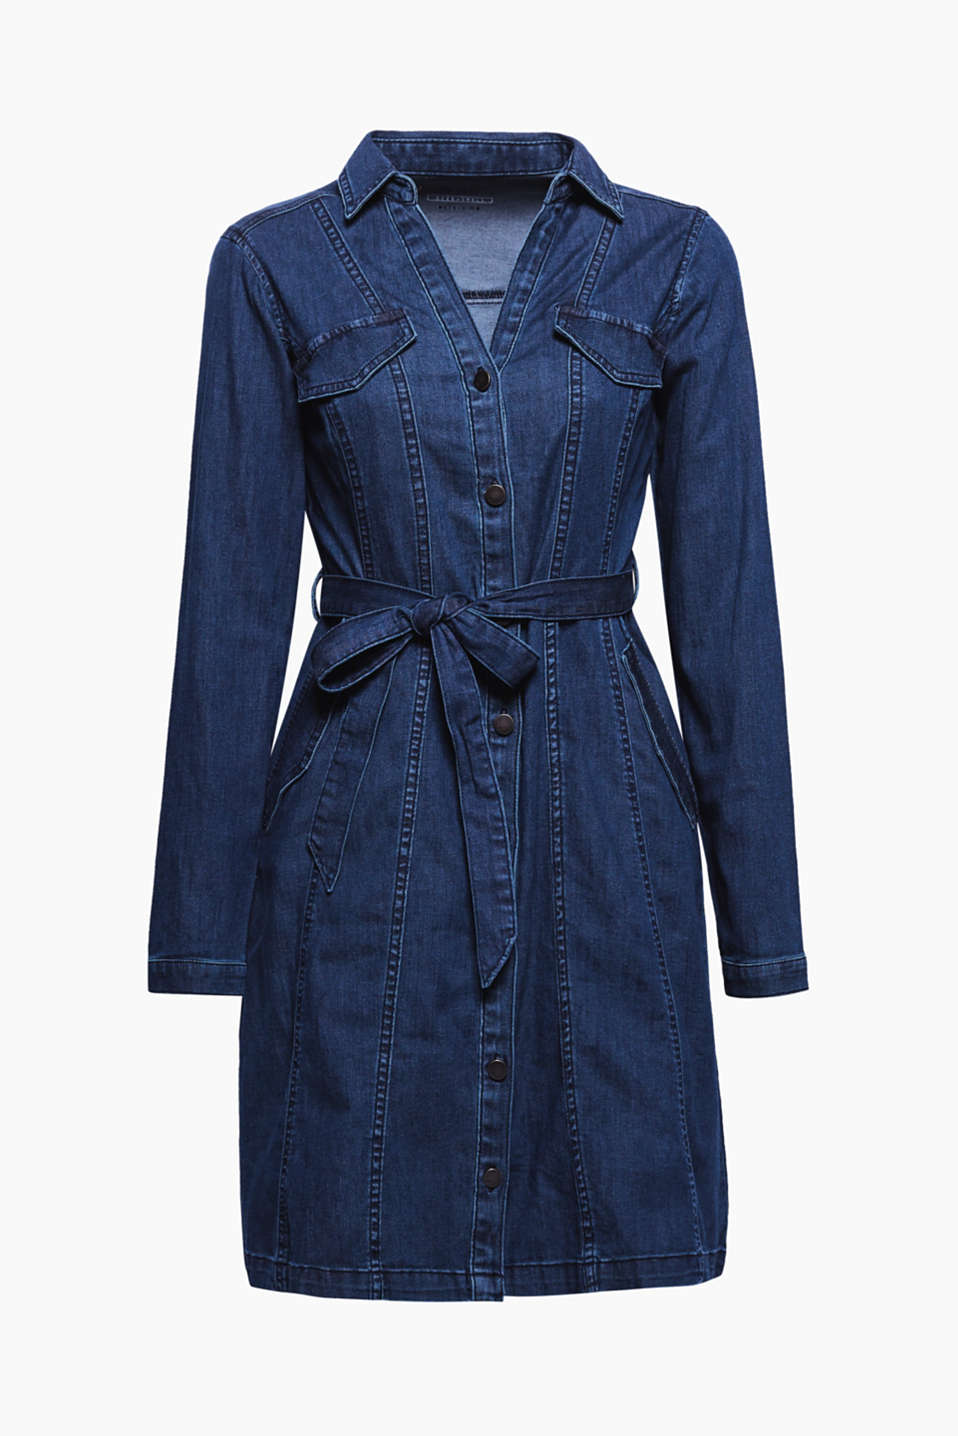 Casual coolness and feminine flair join forces on this fitted shirt dress made of dark blue stretch denim.